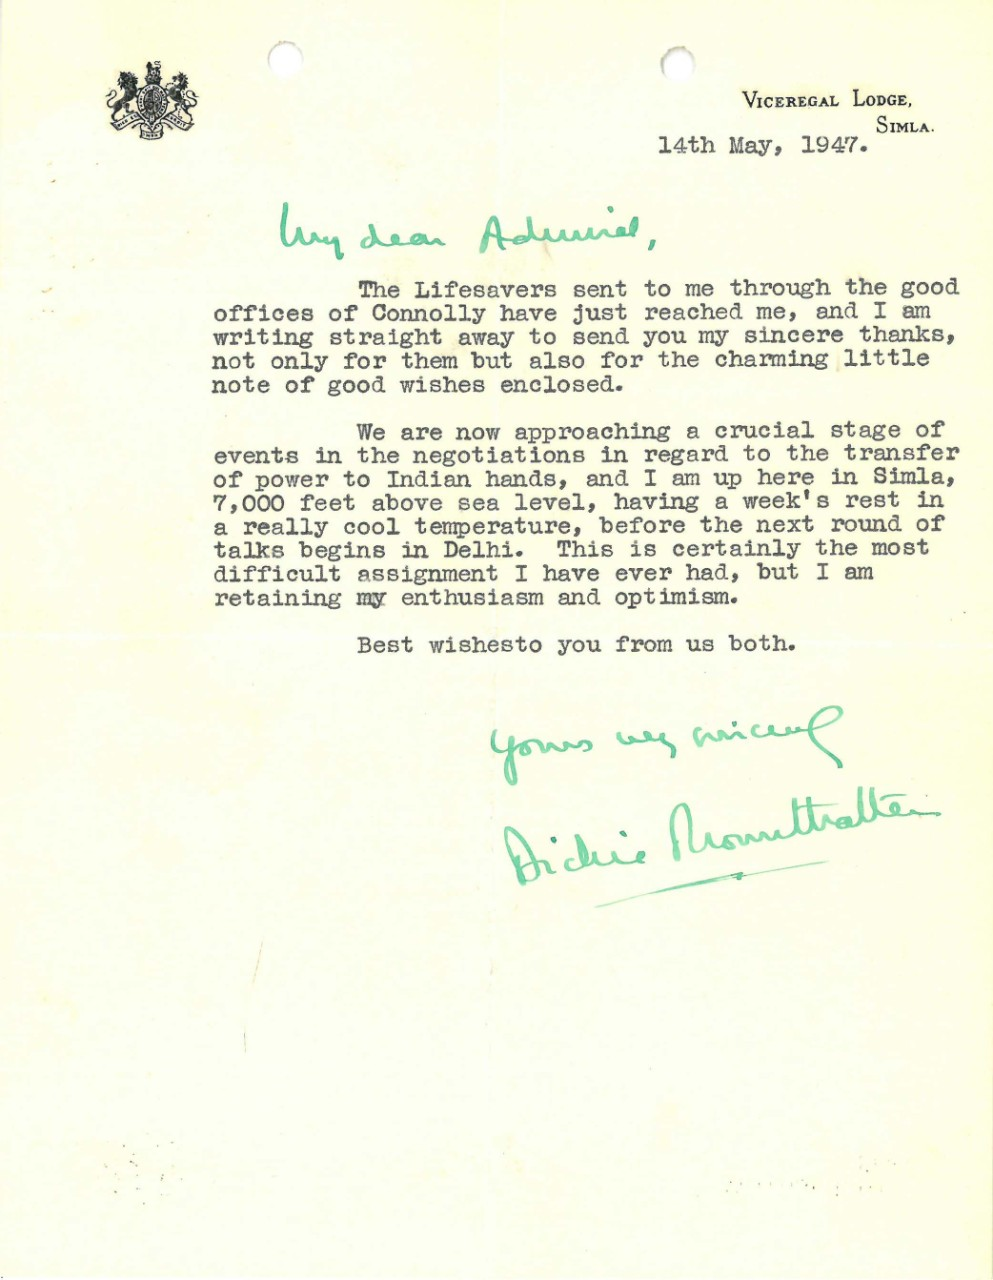 Letter from Lord Mountbatten to Admiral Stark dated May 14, 1947